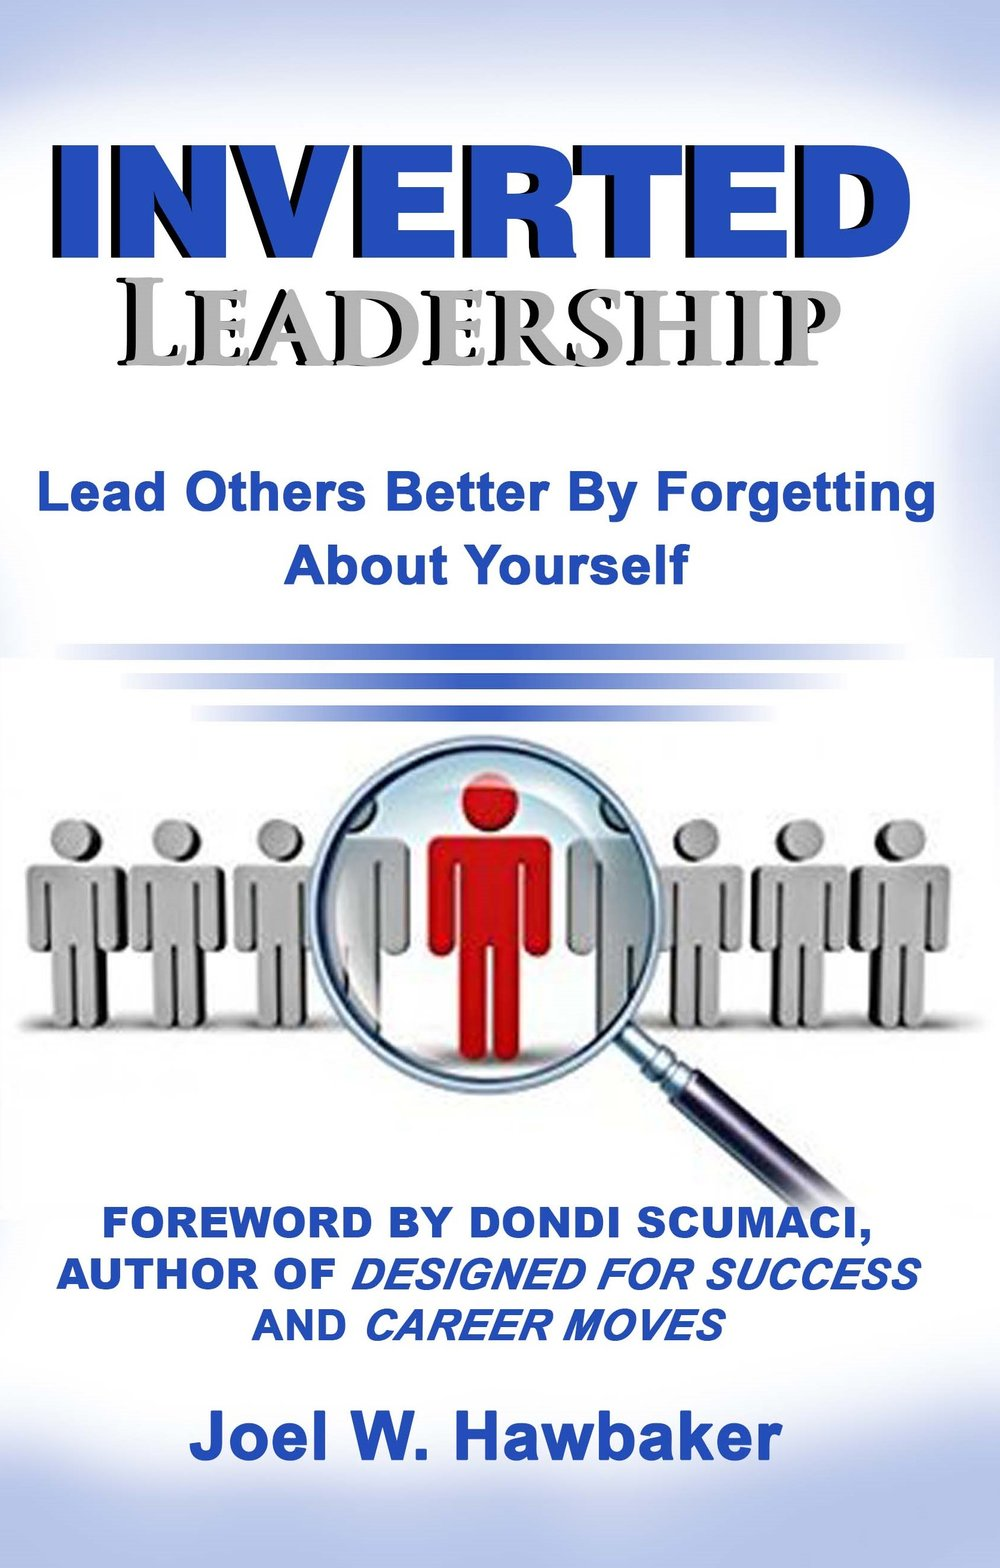 If you want to learn more about why goals are important (but relationships are even more important), go pick up a copy of my book on amazon:  https://www.amazon.com/Inverted-Leadership-Others-Forgetting-Yourself/dp/1983110167/ref=tmm_pap_swatch_0?_encoding=UTF8&qid=1528802141&sr=8-1 .